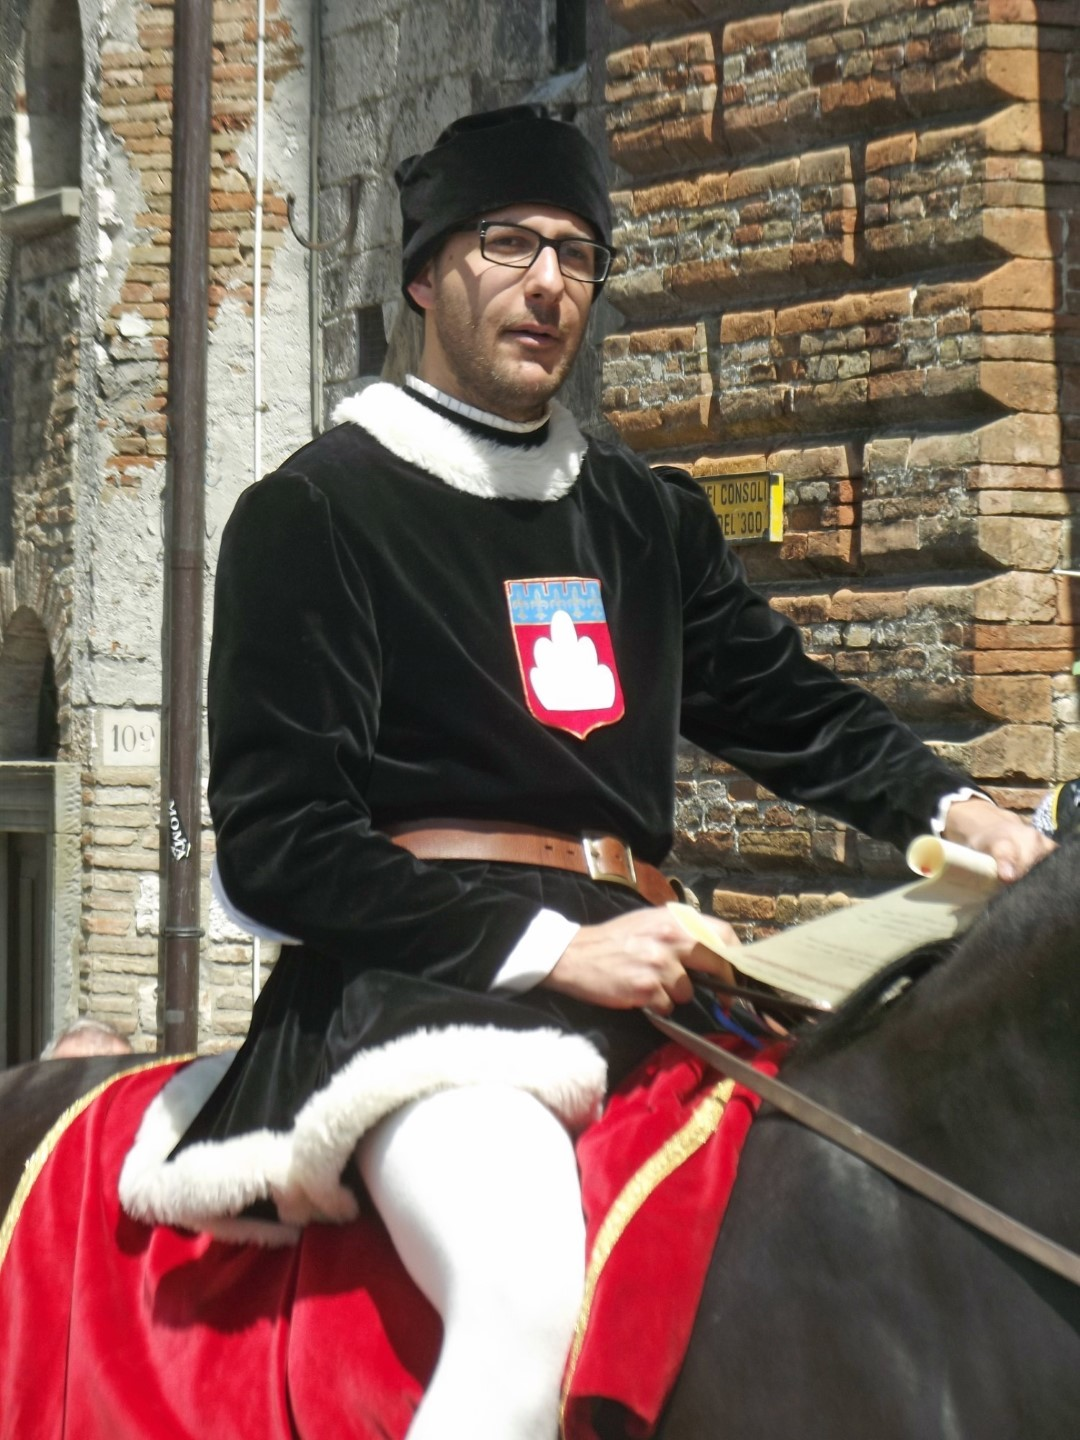 Man in medieval dress on a horse